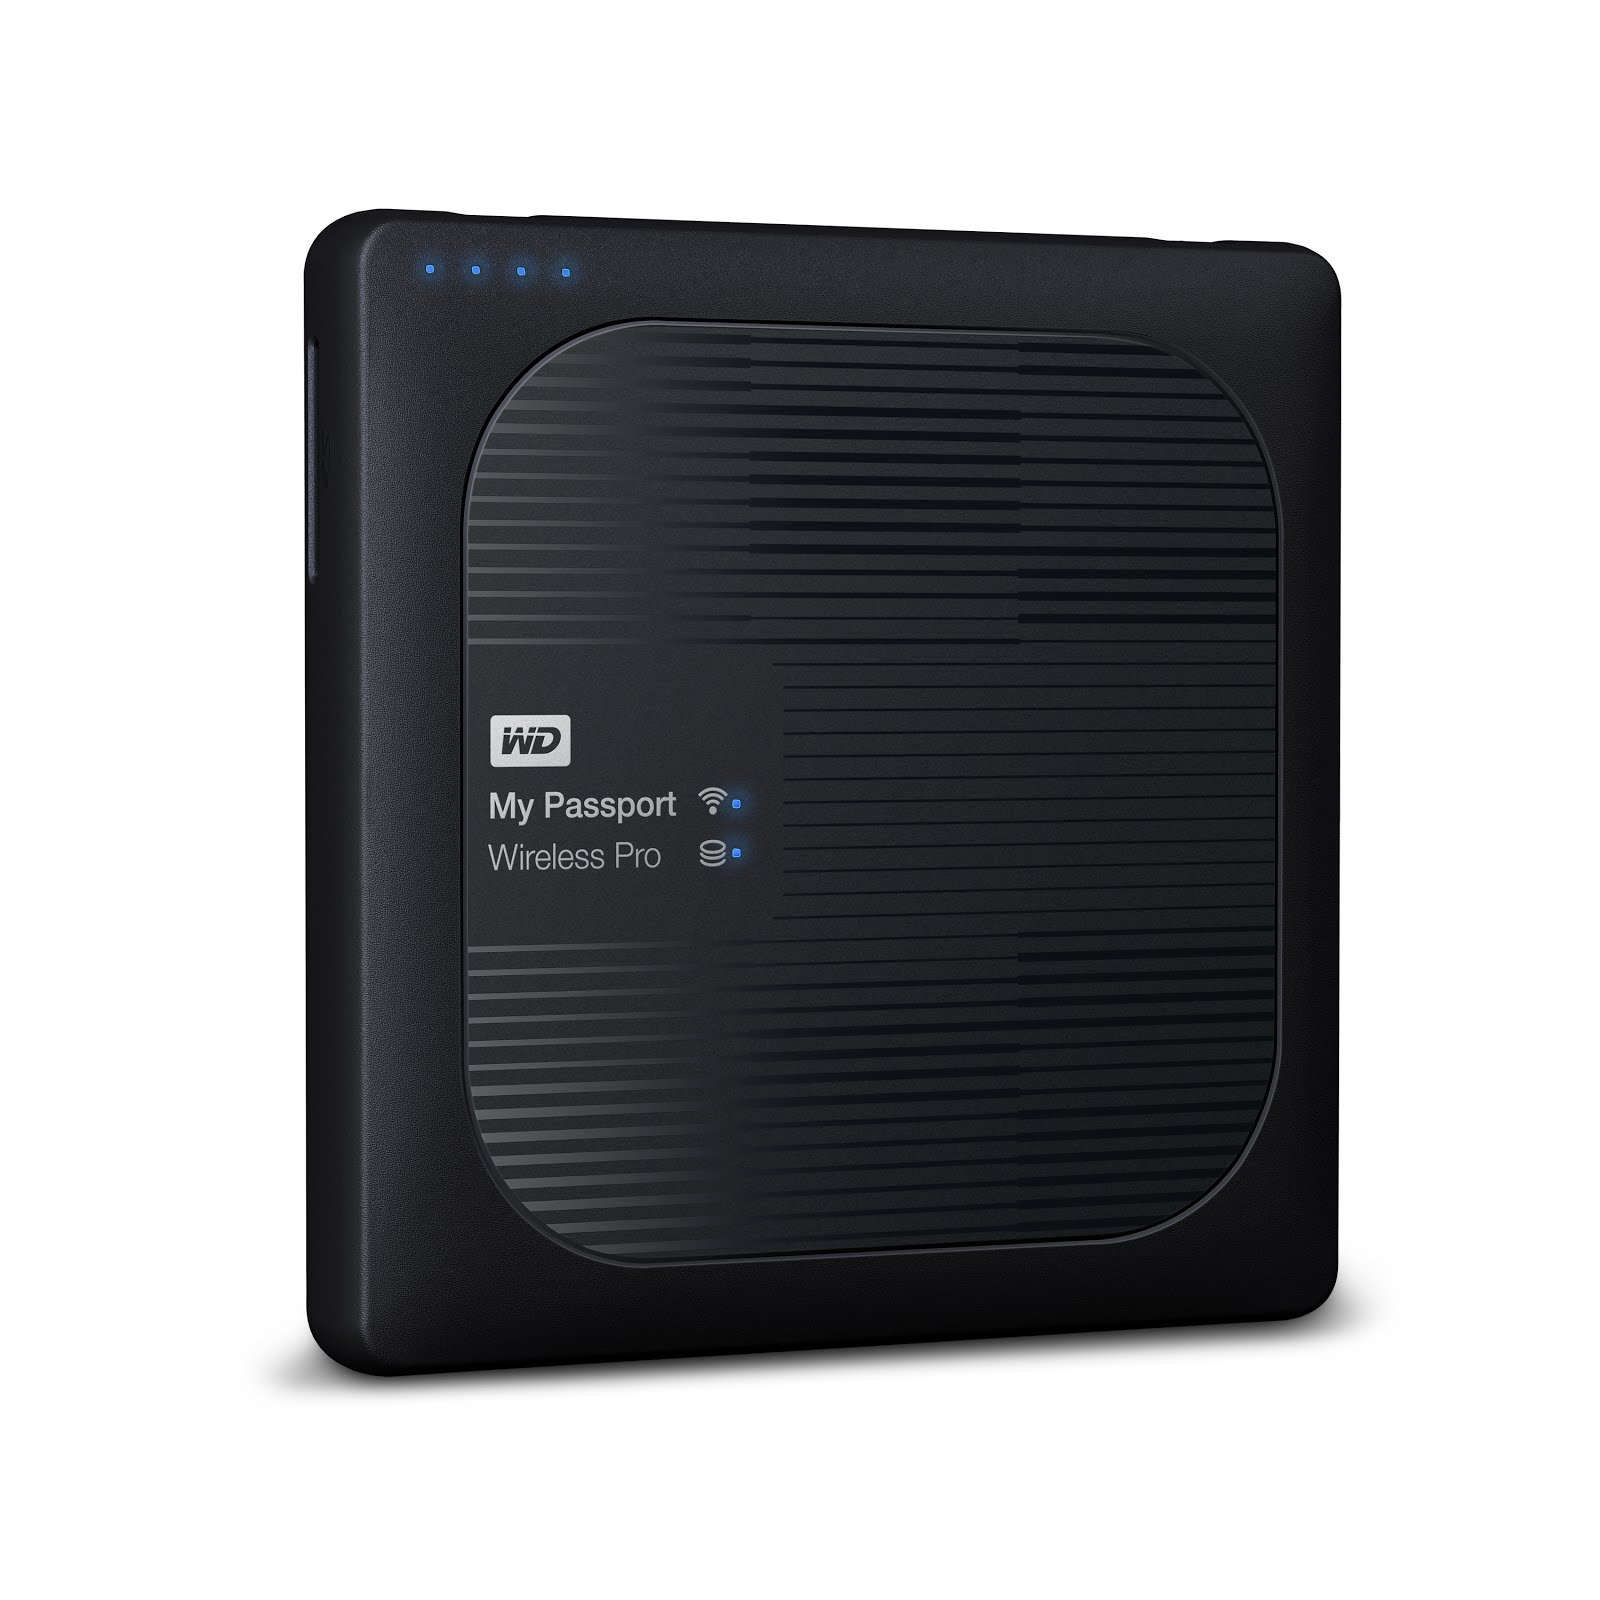 The New Western Digital My Passport Wireless Pro hard disk